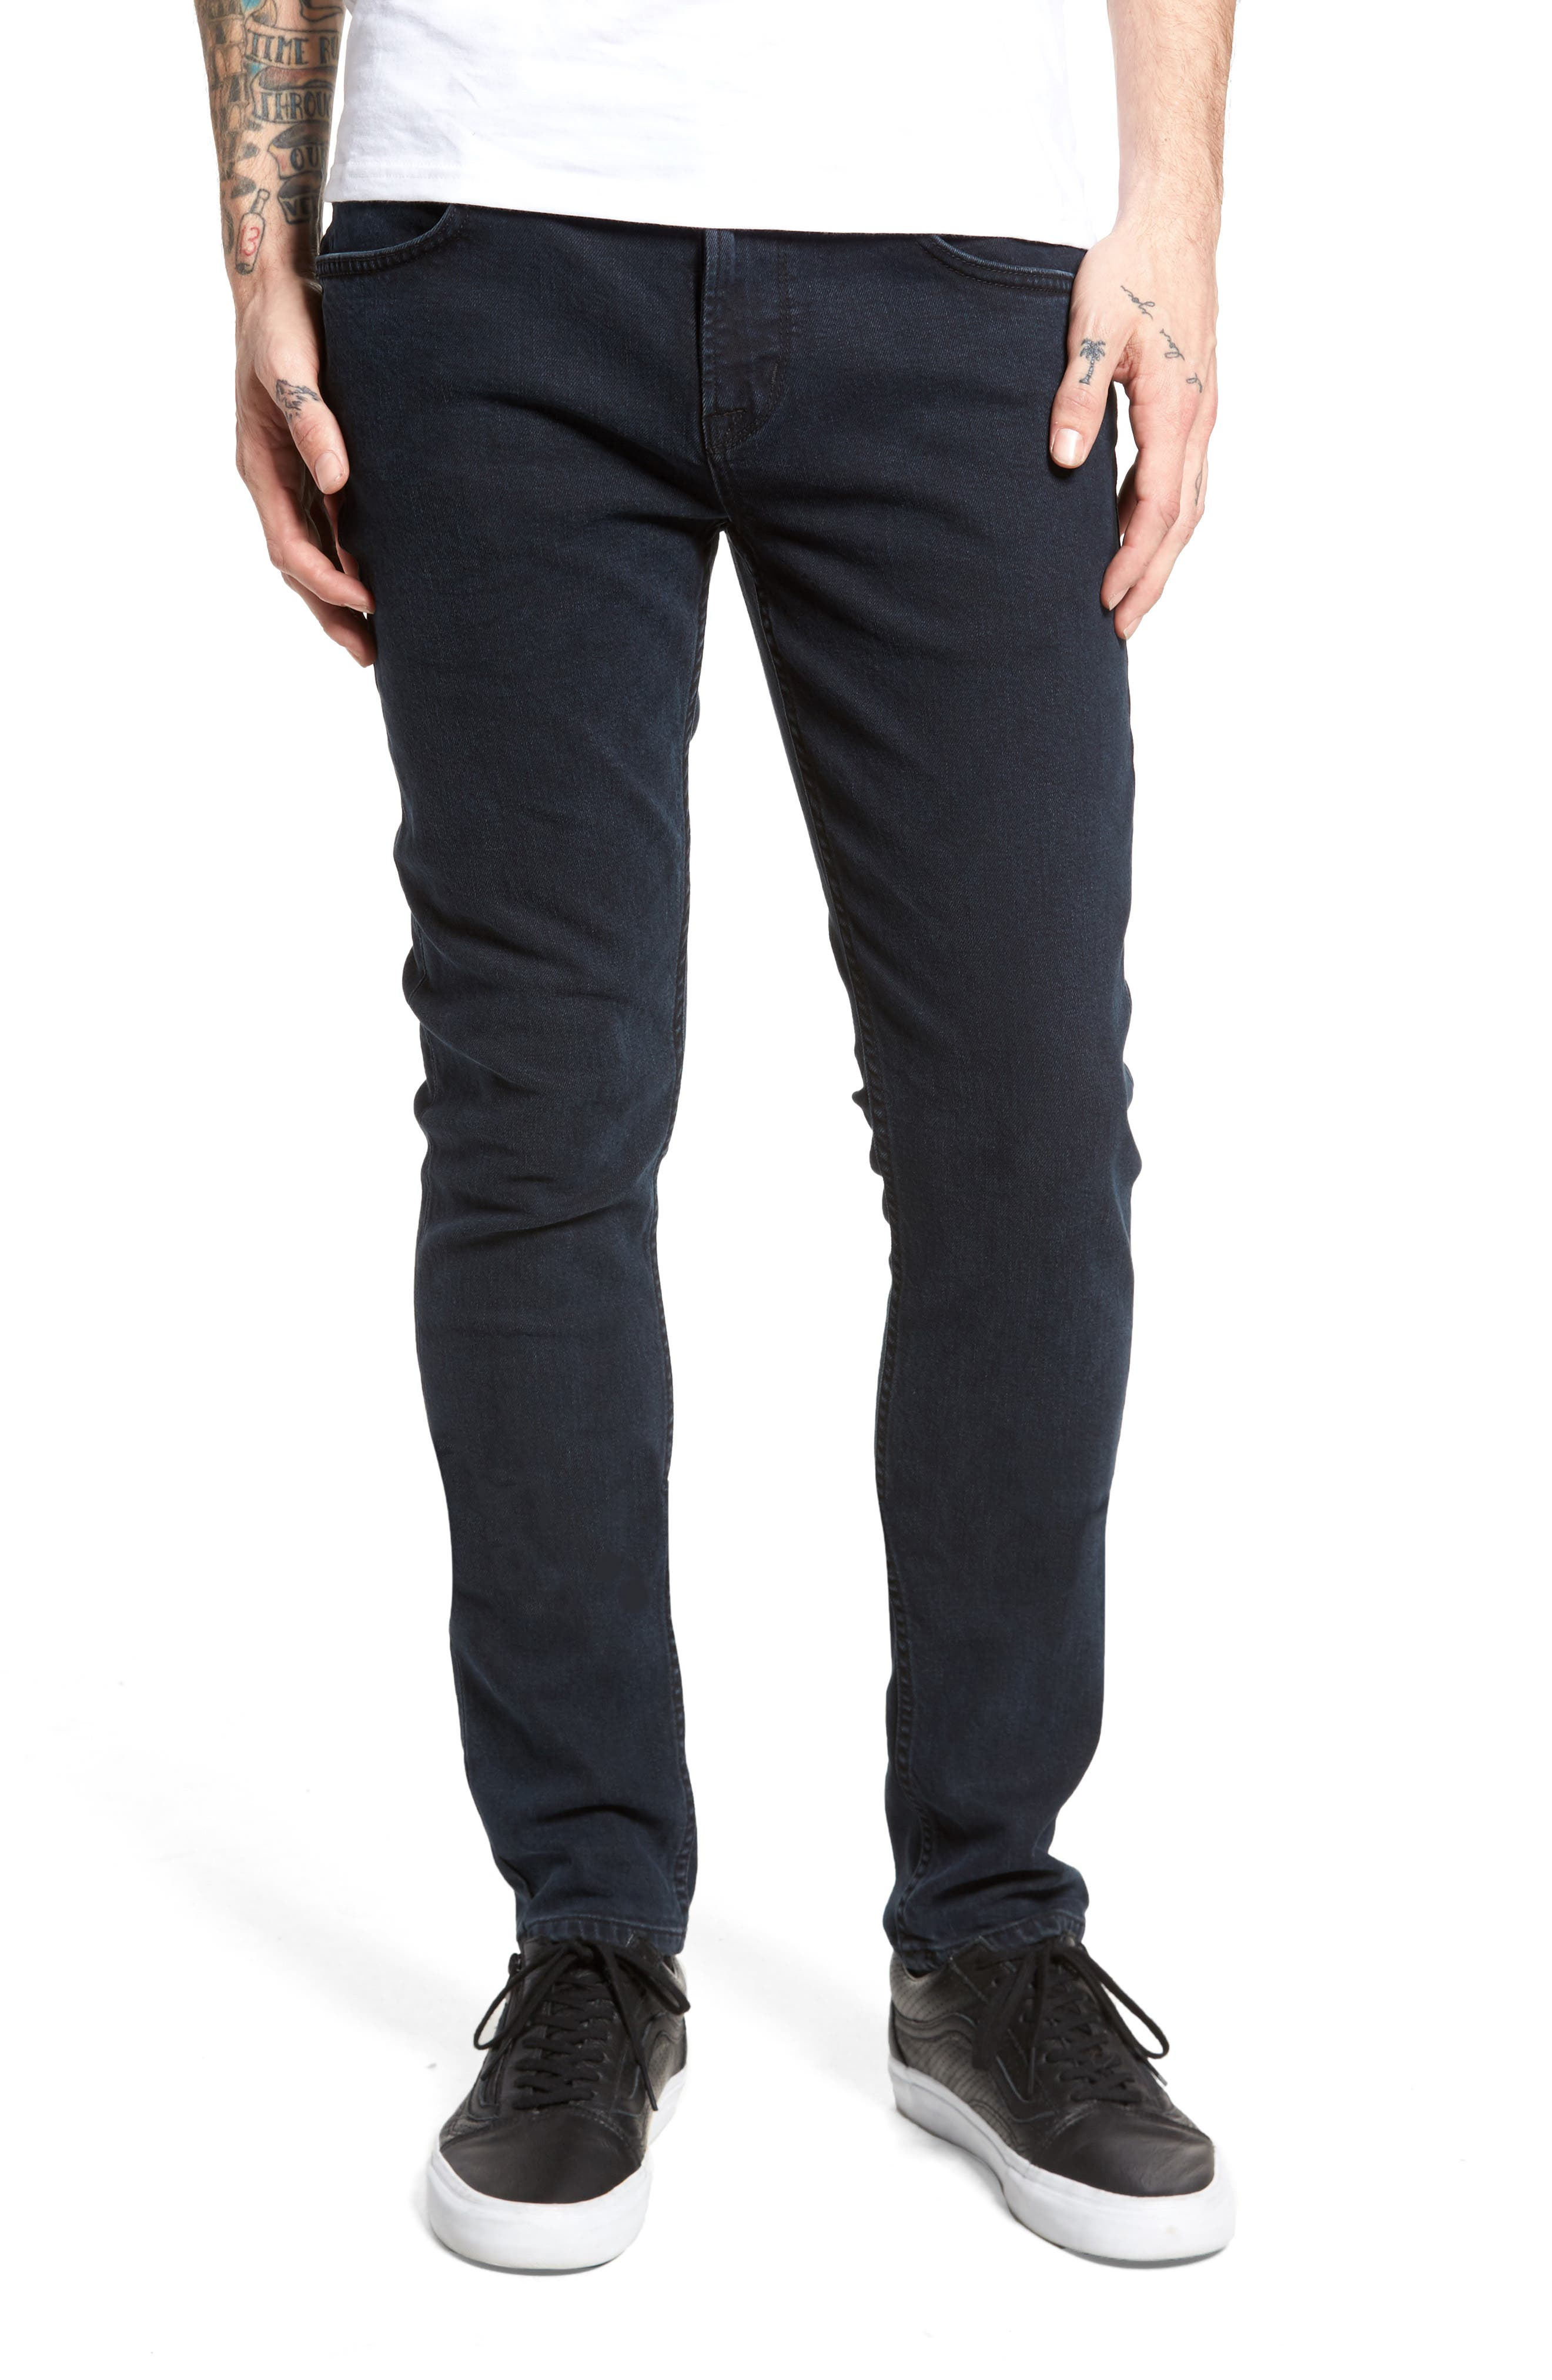 Axl Skinny Fit Jeans,                             Main thumbnail 1, color,                             401